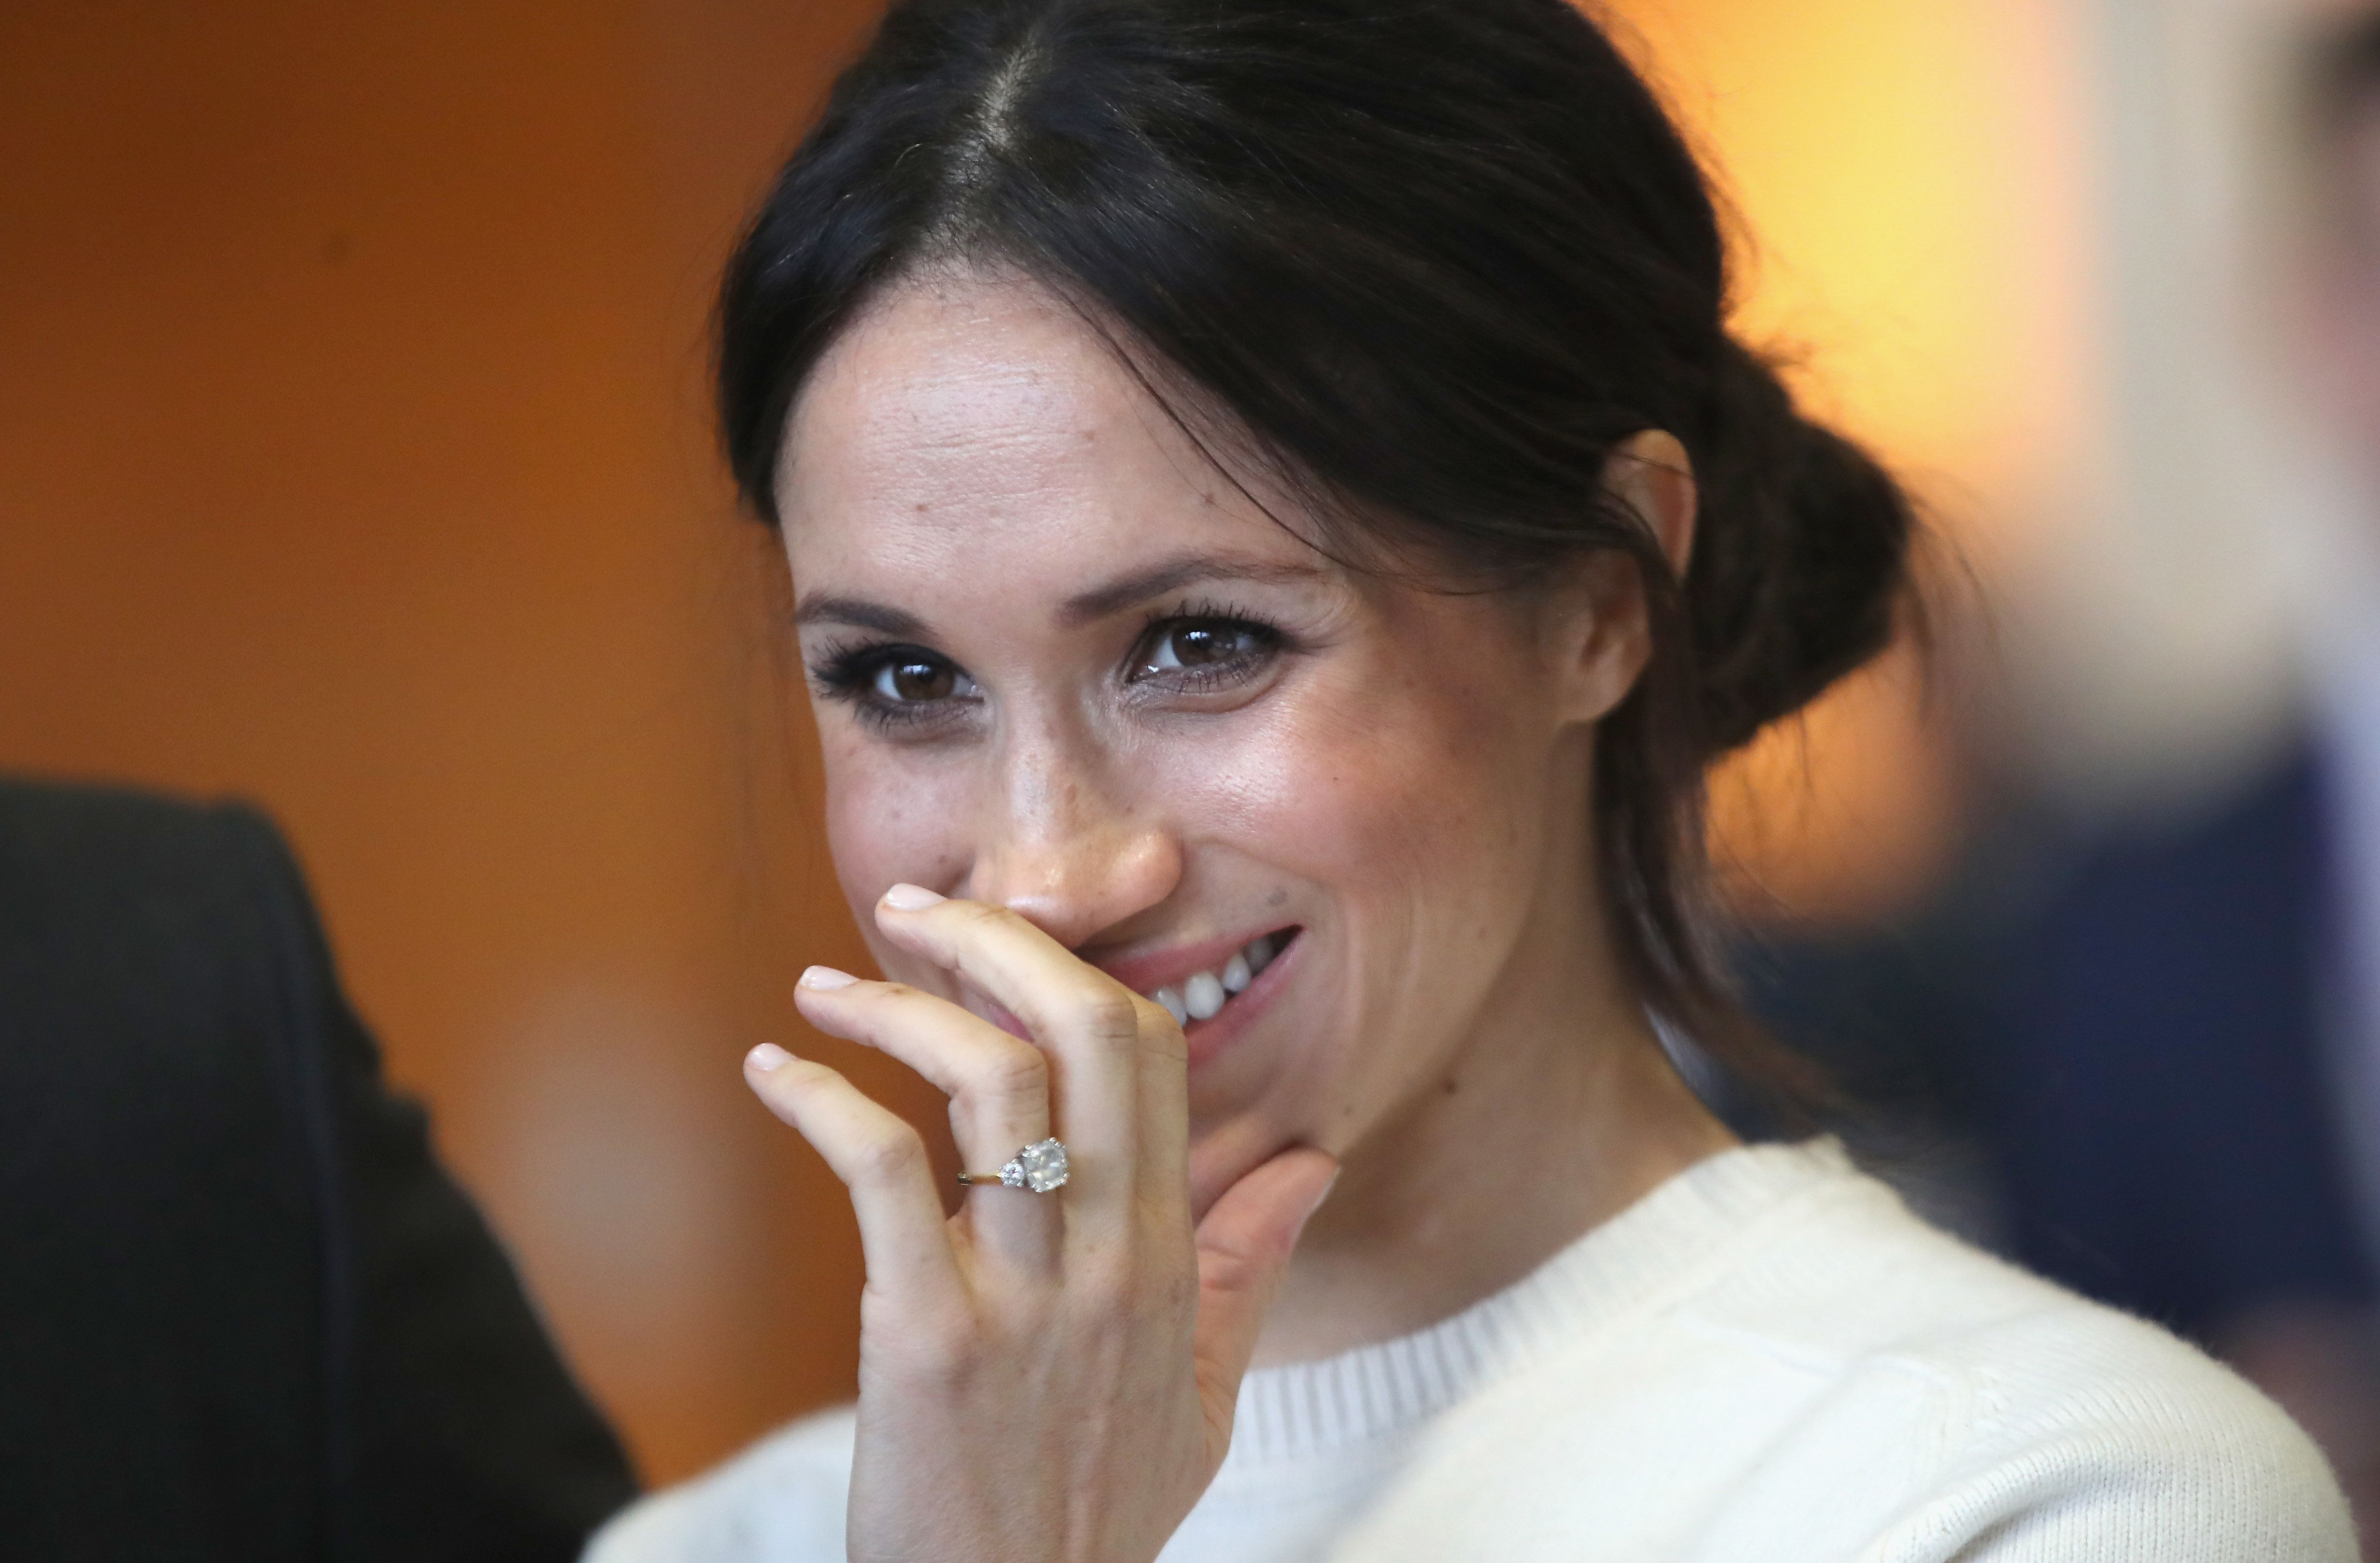 See Meghan Markle In A Wedding Dress Before The Royal Wedding